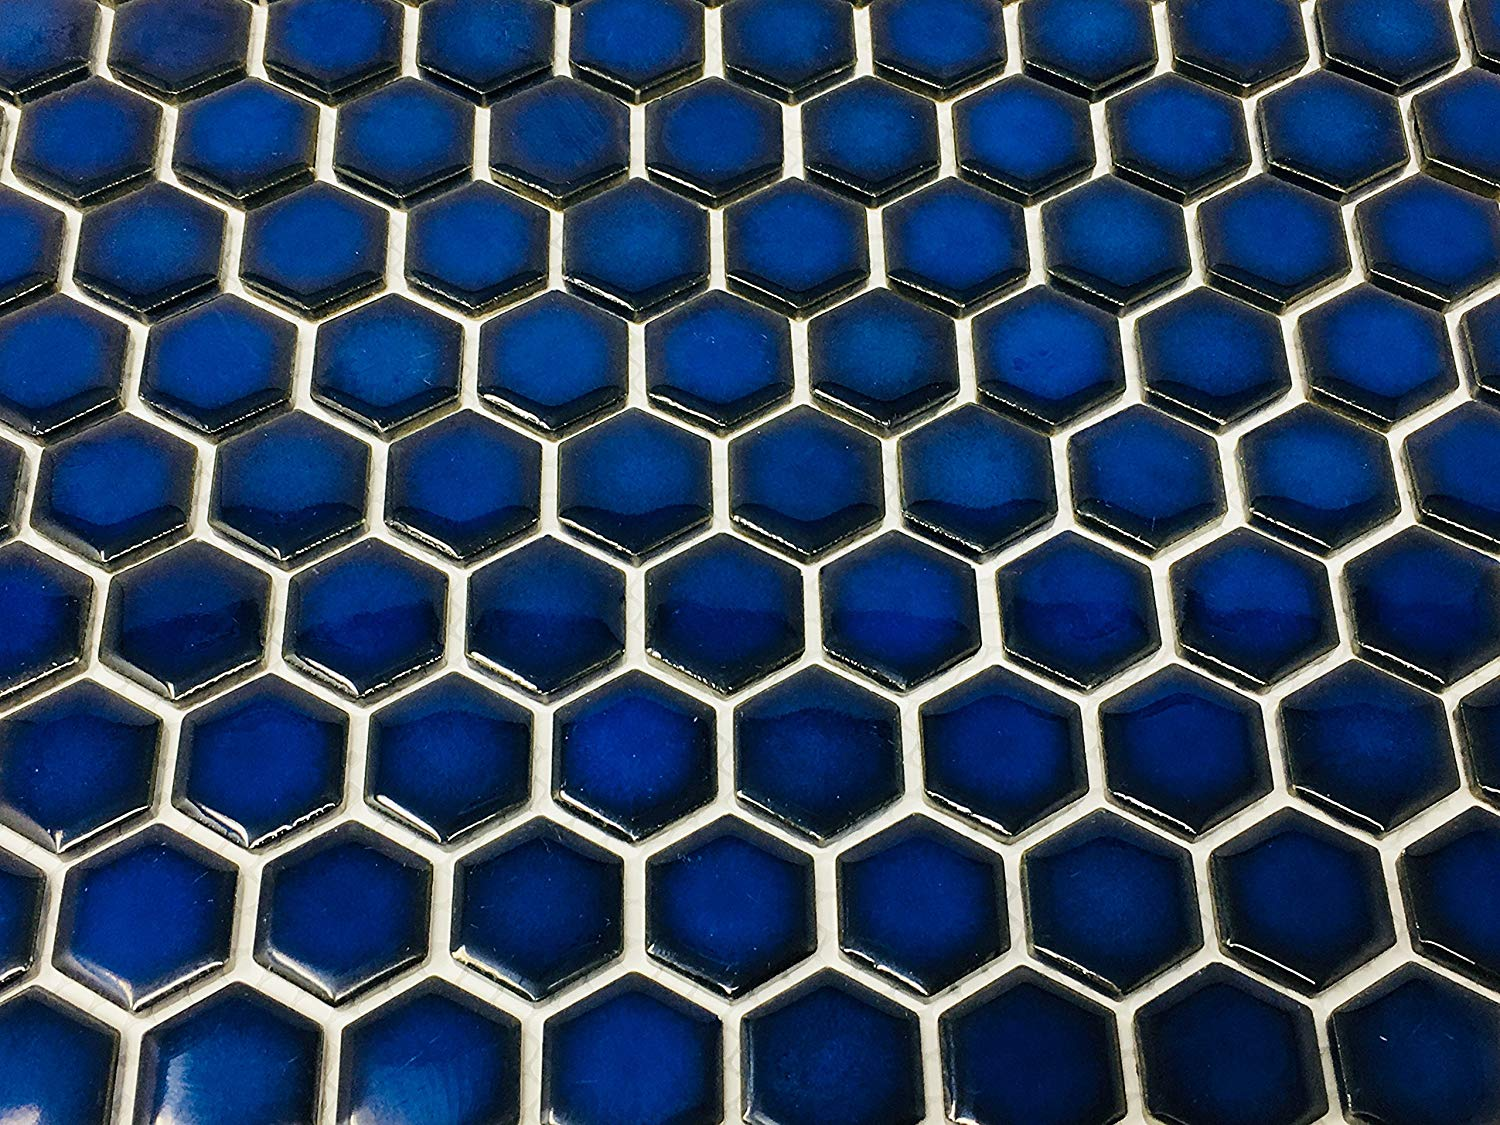 Image of: Hexagon Cobalt Blue Porcelain Mosaic Tile Glossy Look 1 Inch Box Of Tenedos